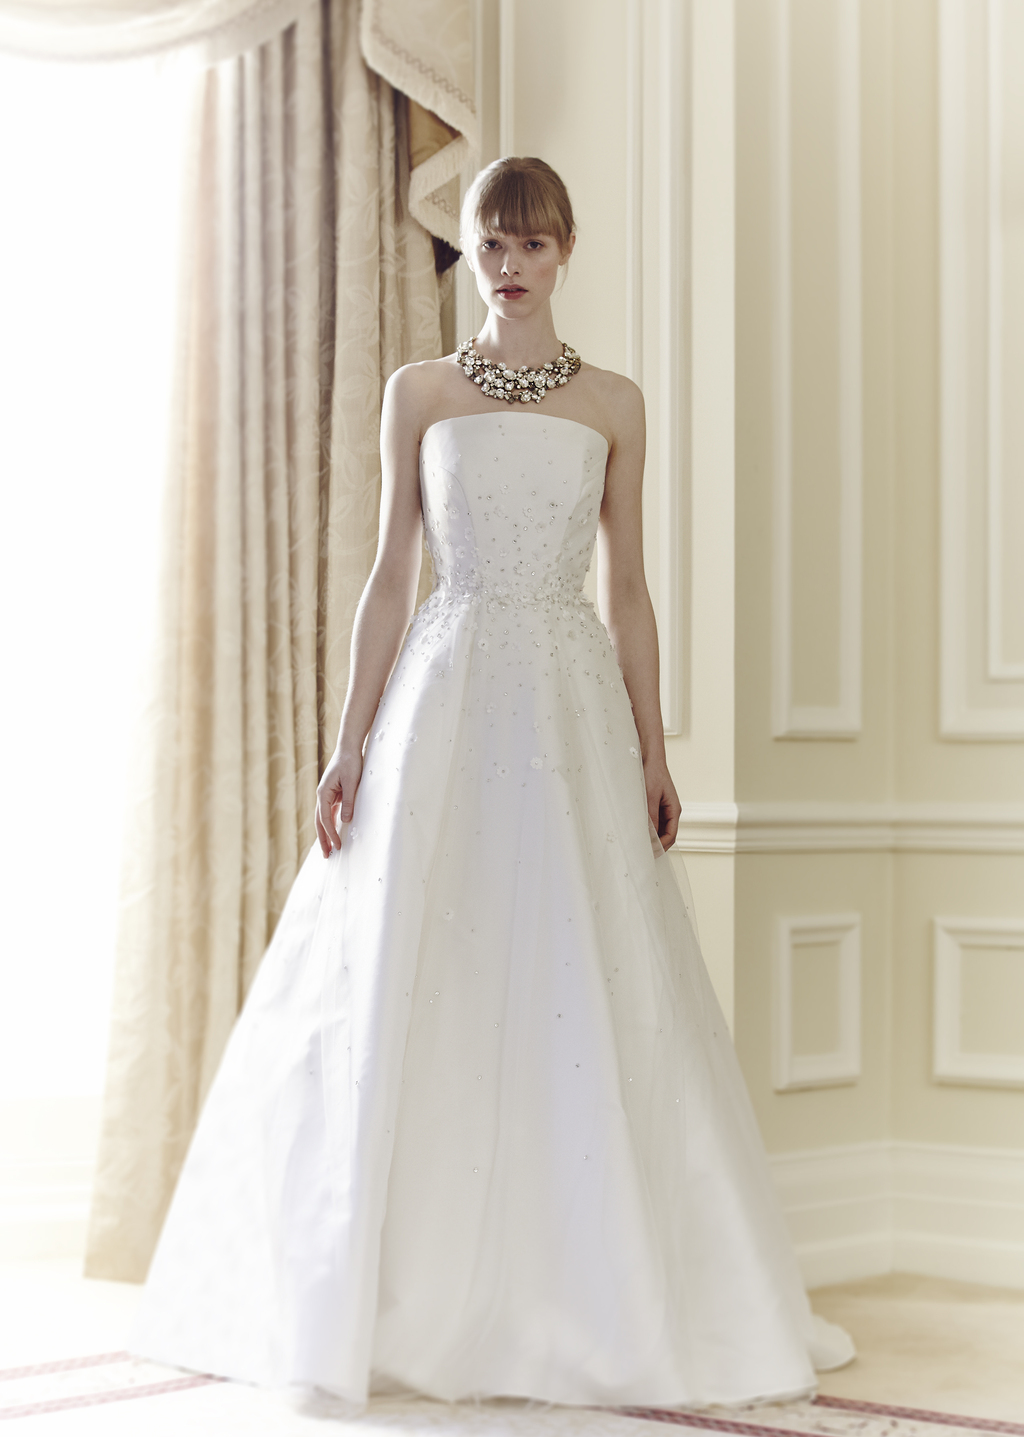 Jenny-packham-bridal-collection-spring-summer-2014-wedding-dress-minnie-with-necklace.full